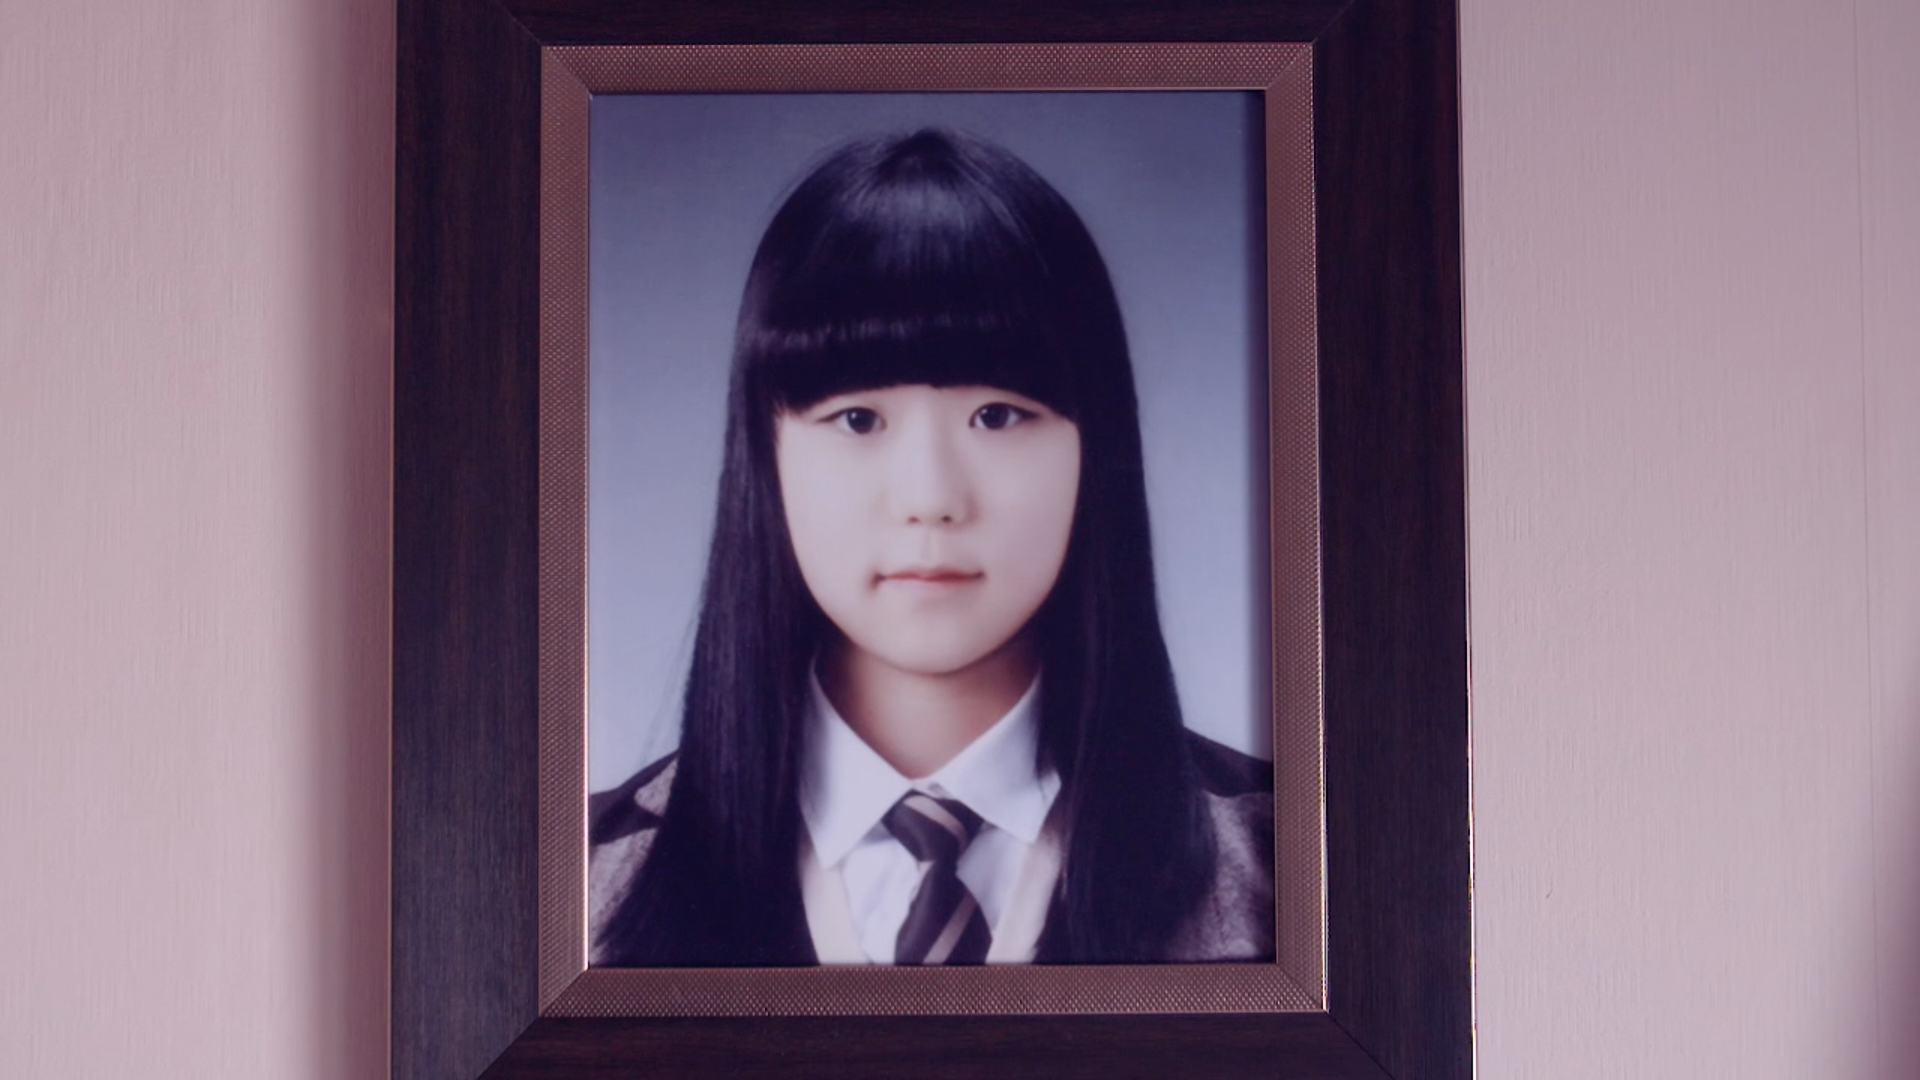 Remembering a Tragic Accident in Korea